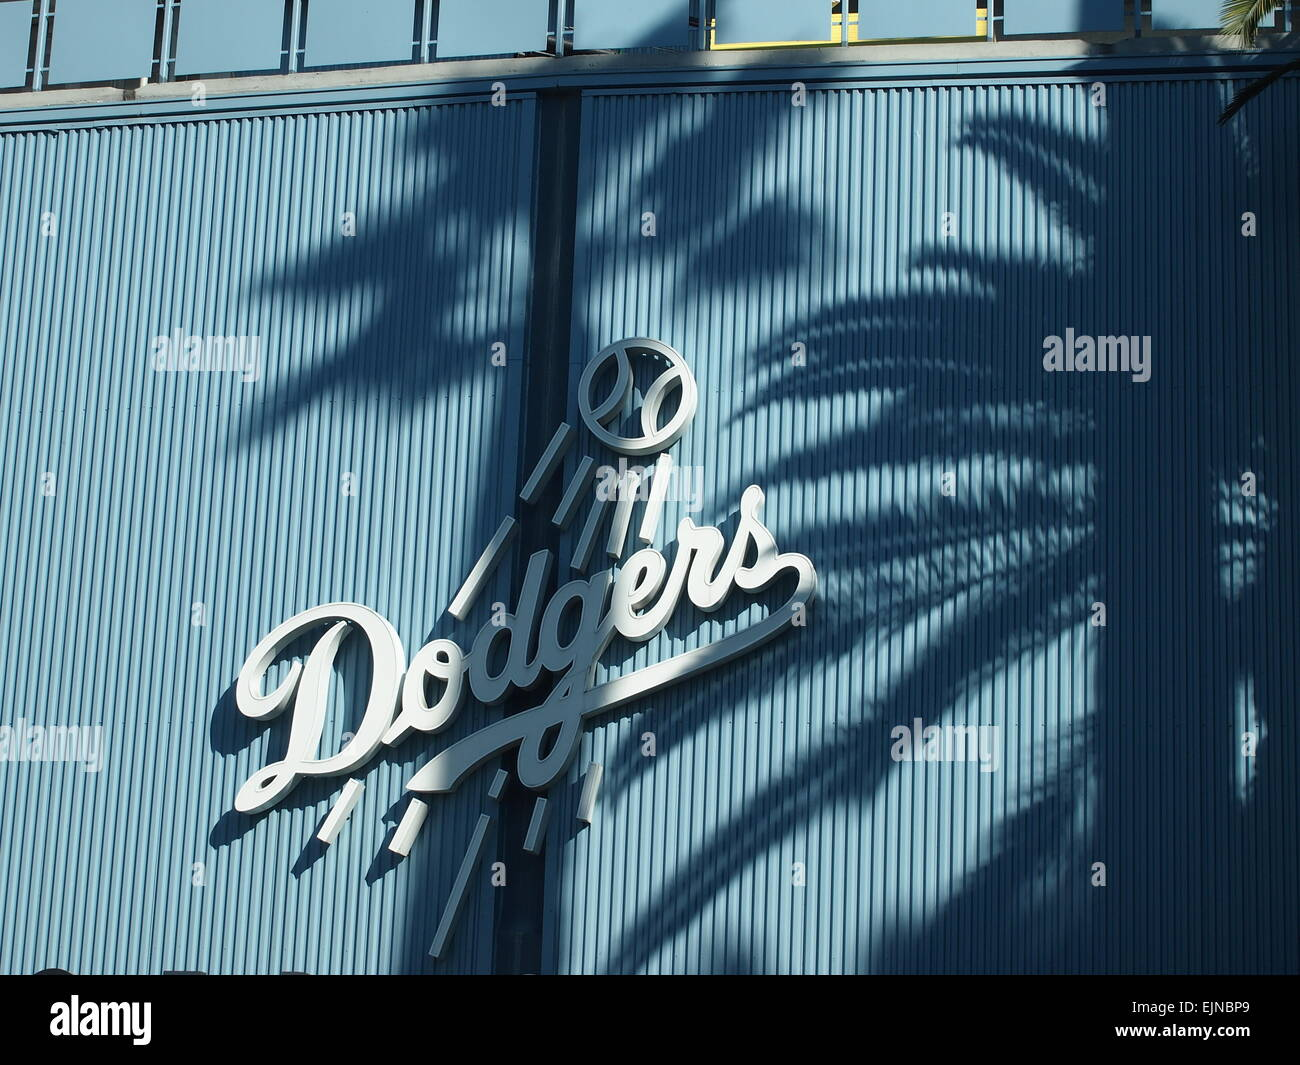 Dodgers stock photos dodgers stock images alamy palm tree shadows on the front of dodgers stadium los angeles usa stock buycottarizona Image collections